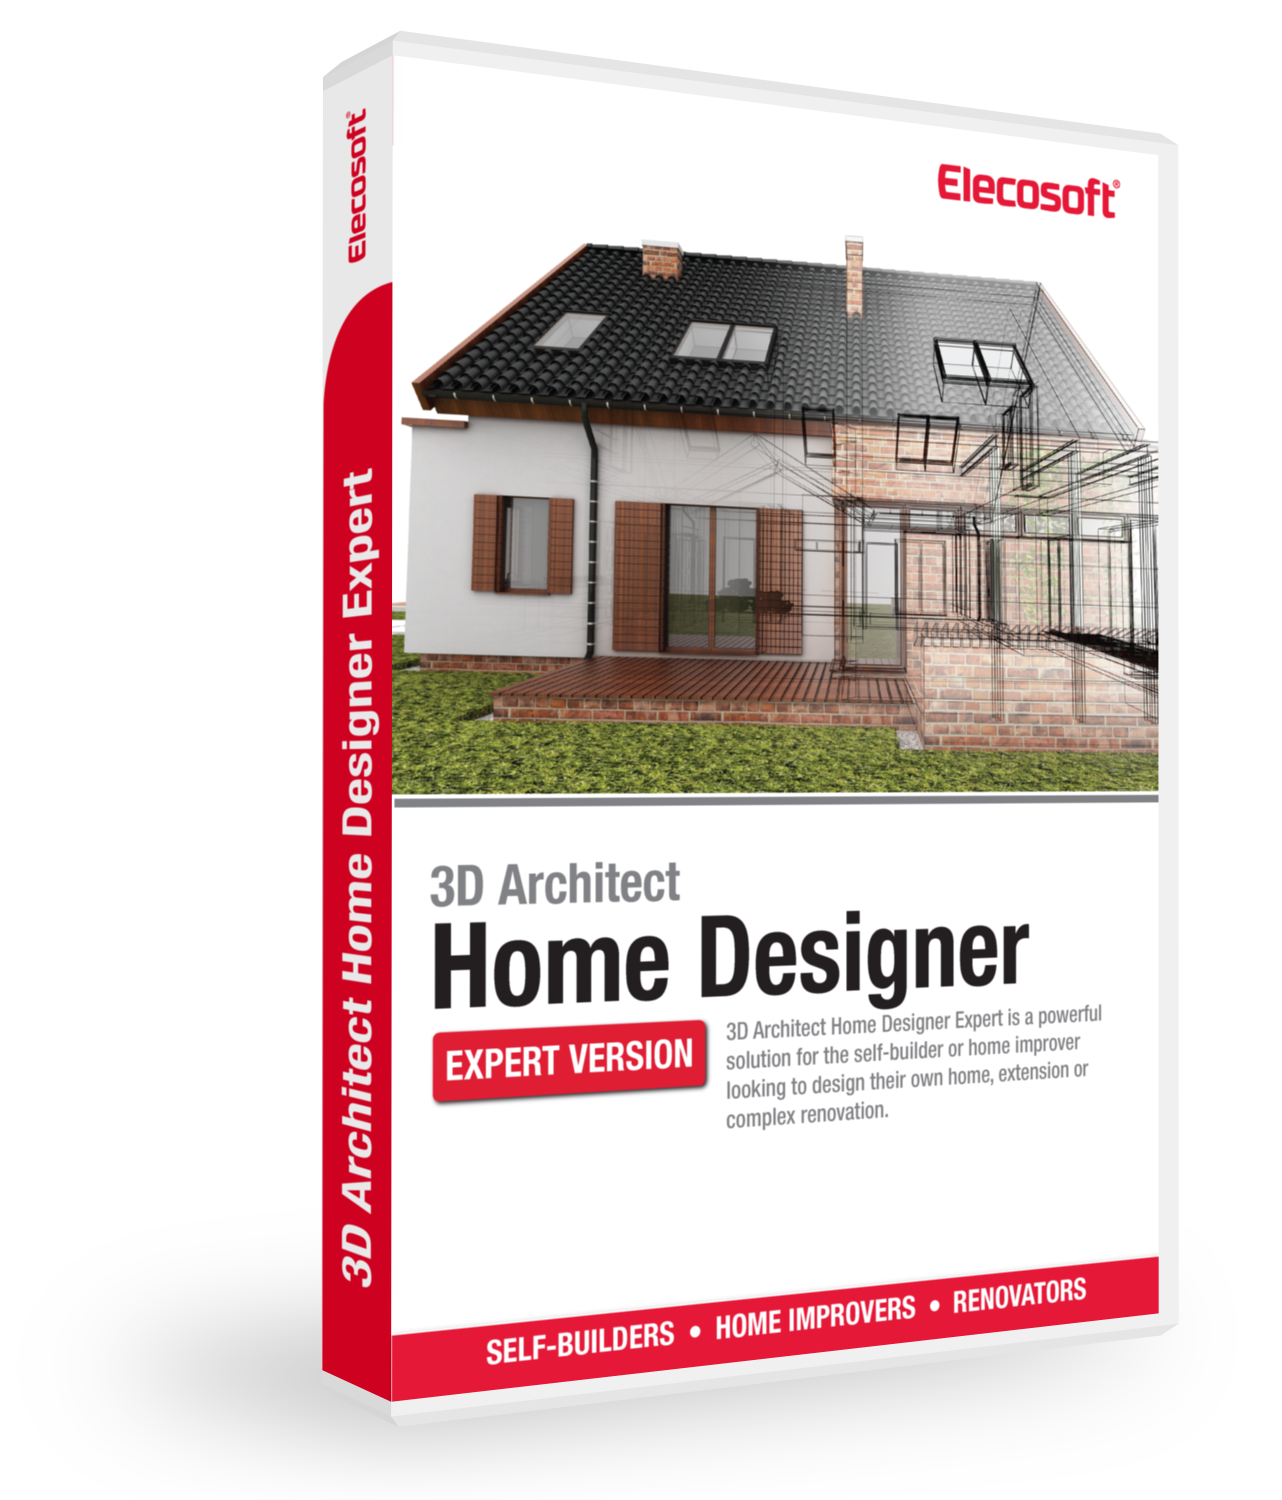 Home Design 3d Expert: The UK's Best Sketchup Alternative